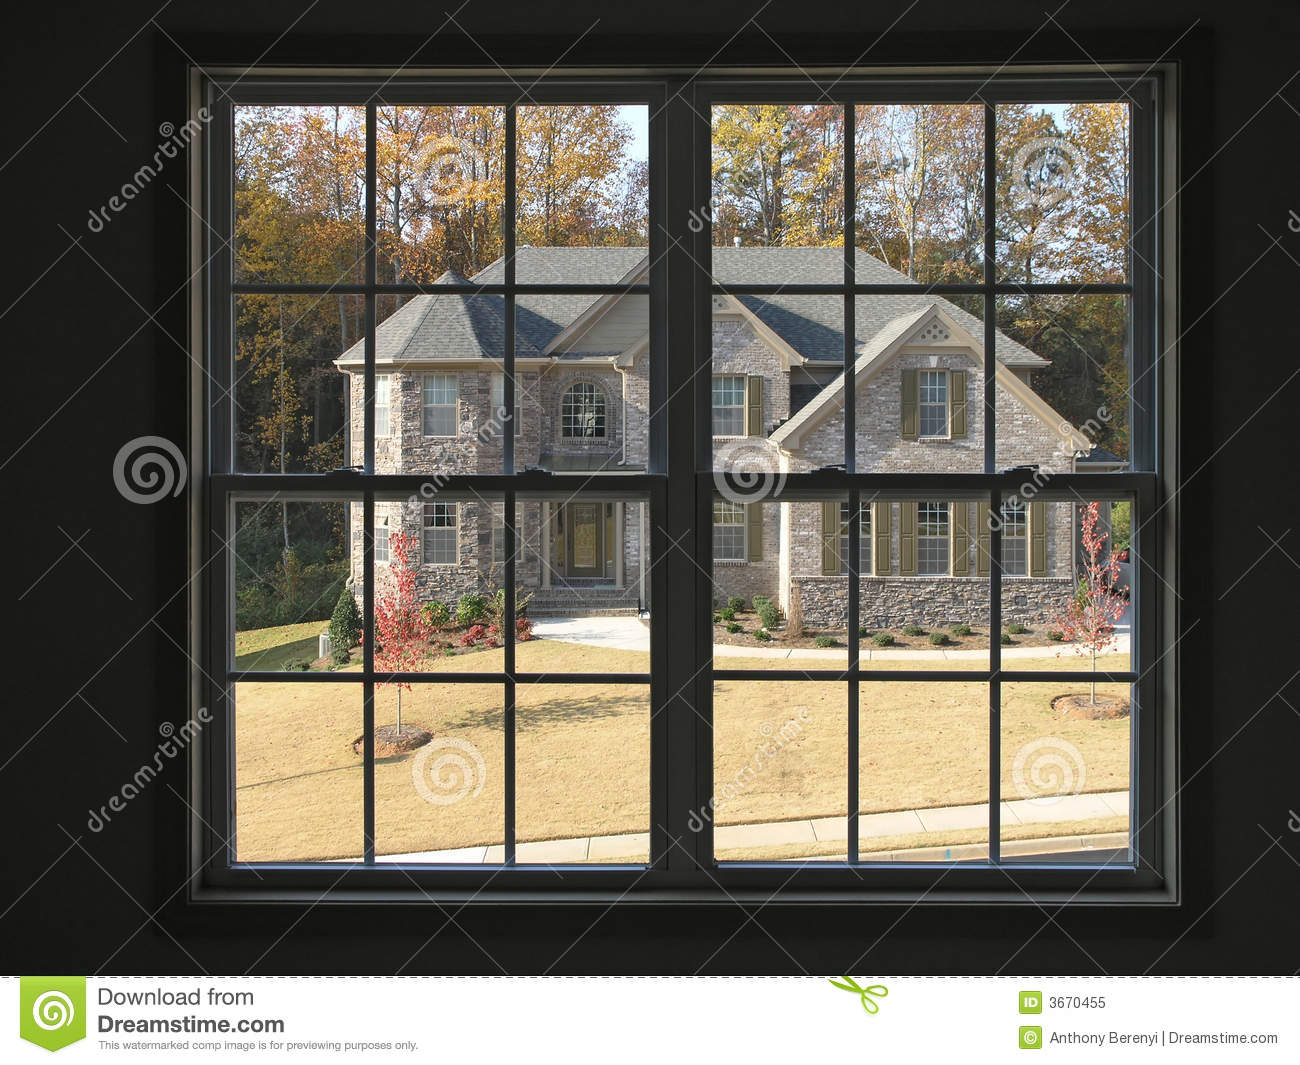 Luxury home thru window 2 royalty free stock photo image for Luxury home windows